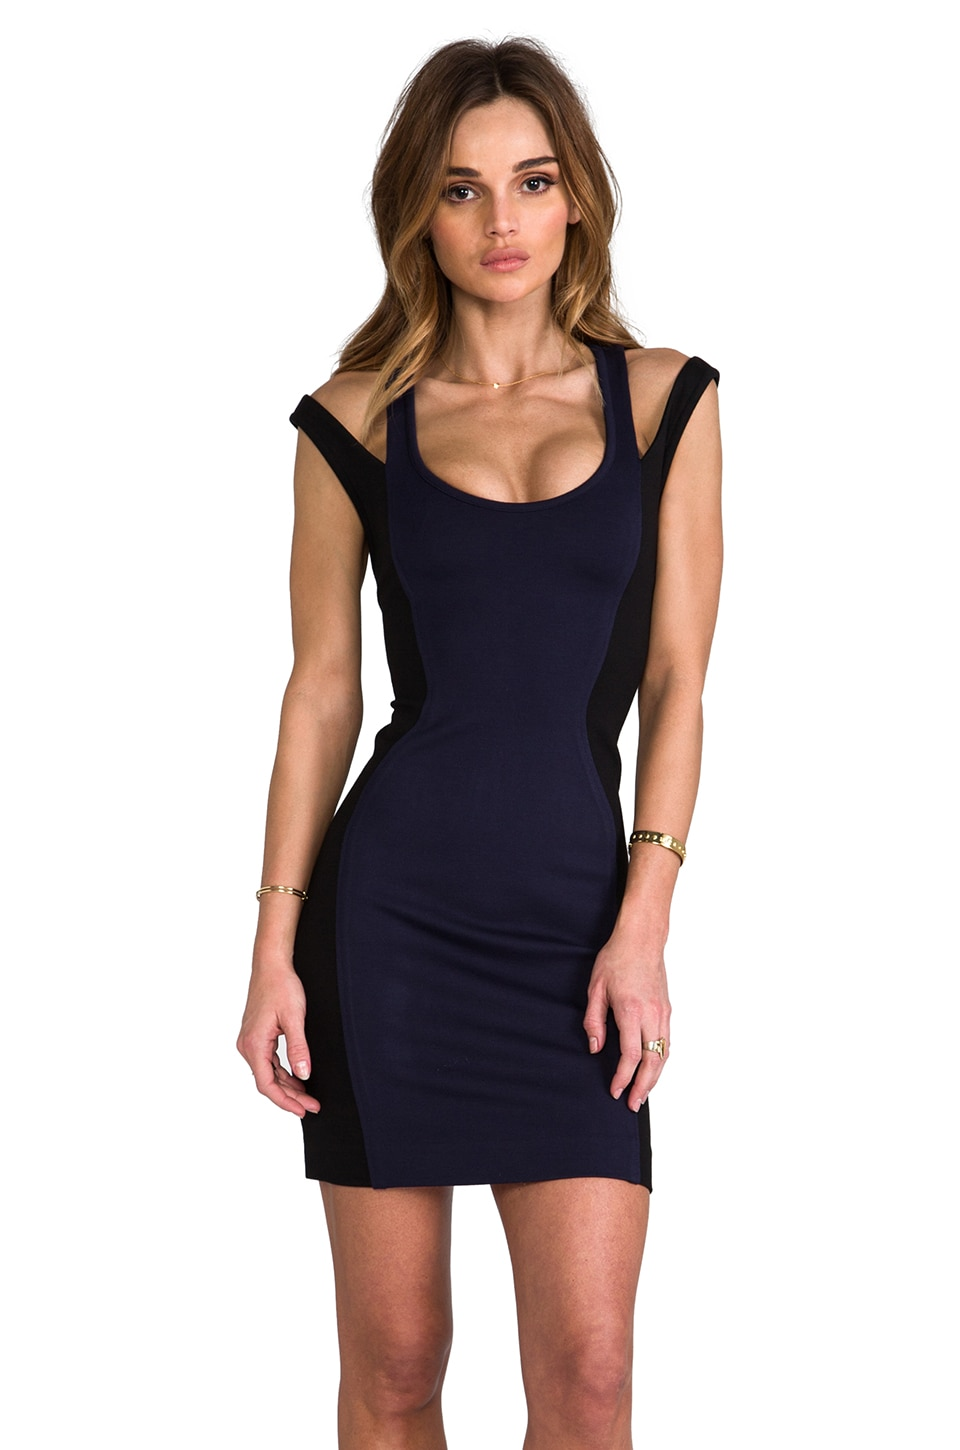 Rebecca Minkoff Saturday Dress en Navy/Black Combo